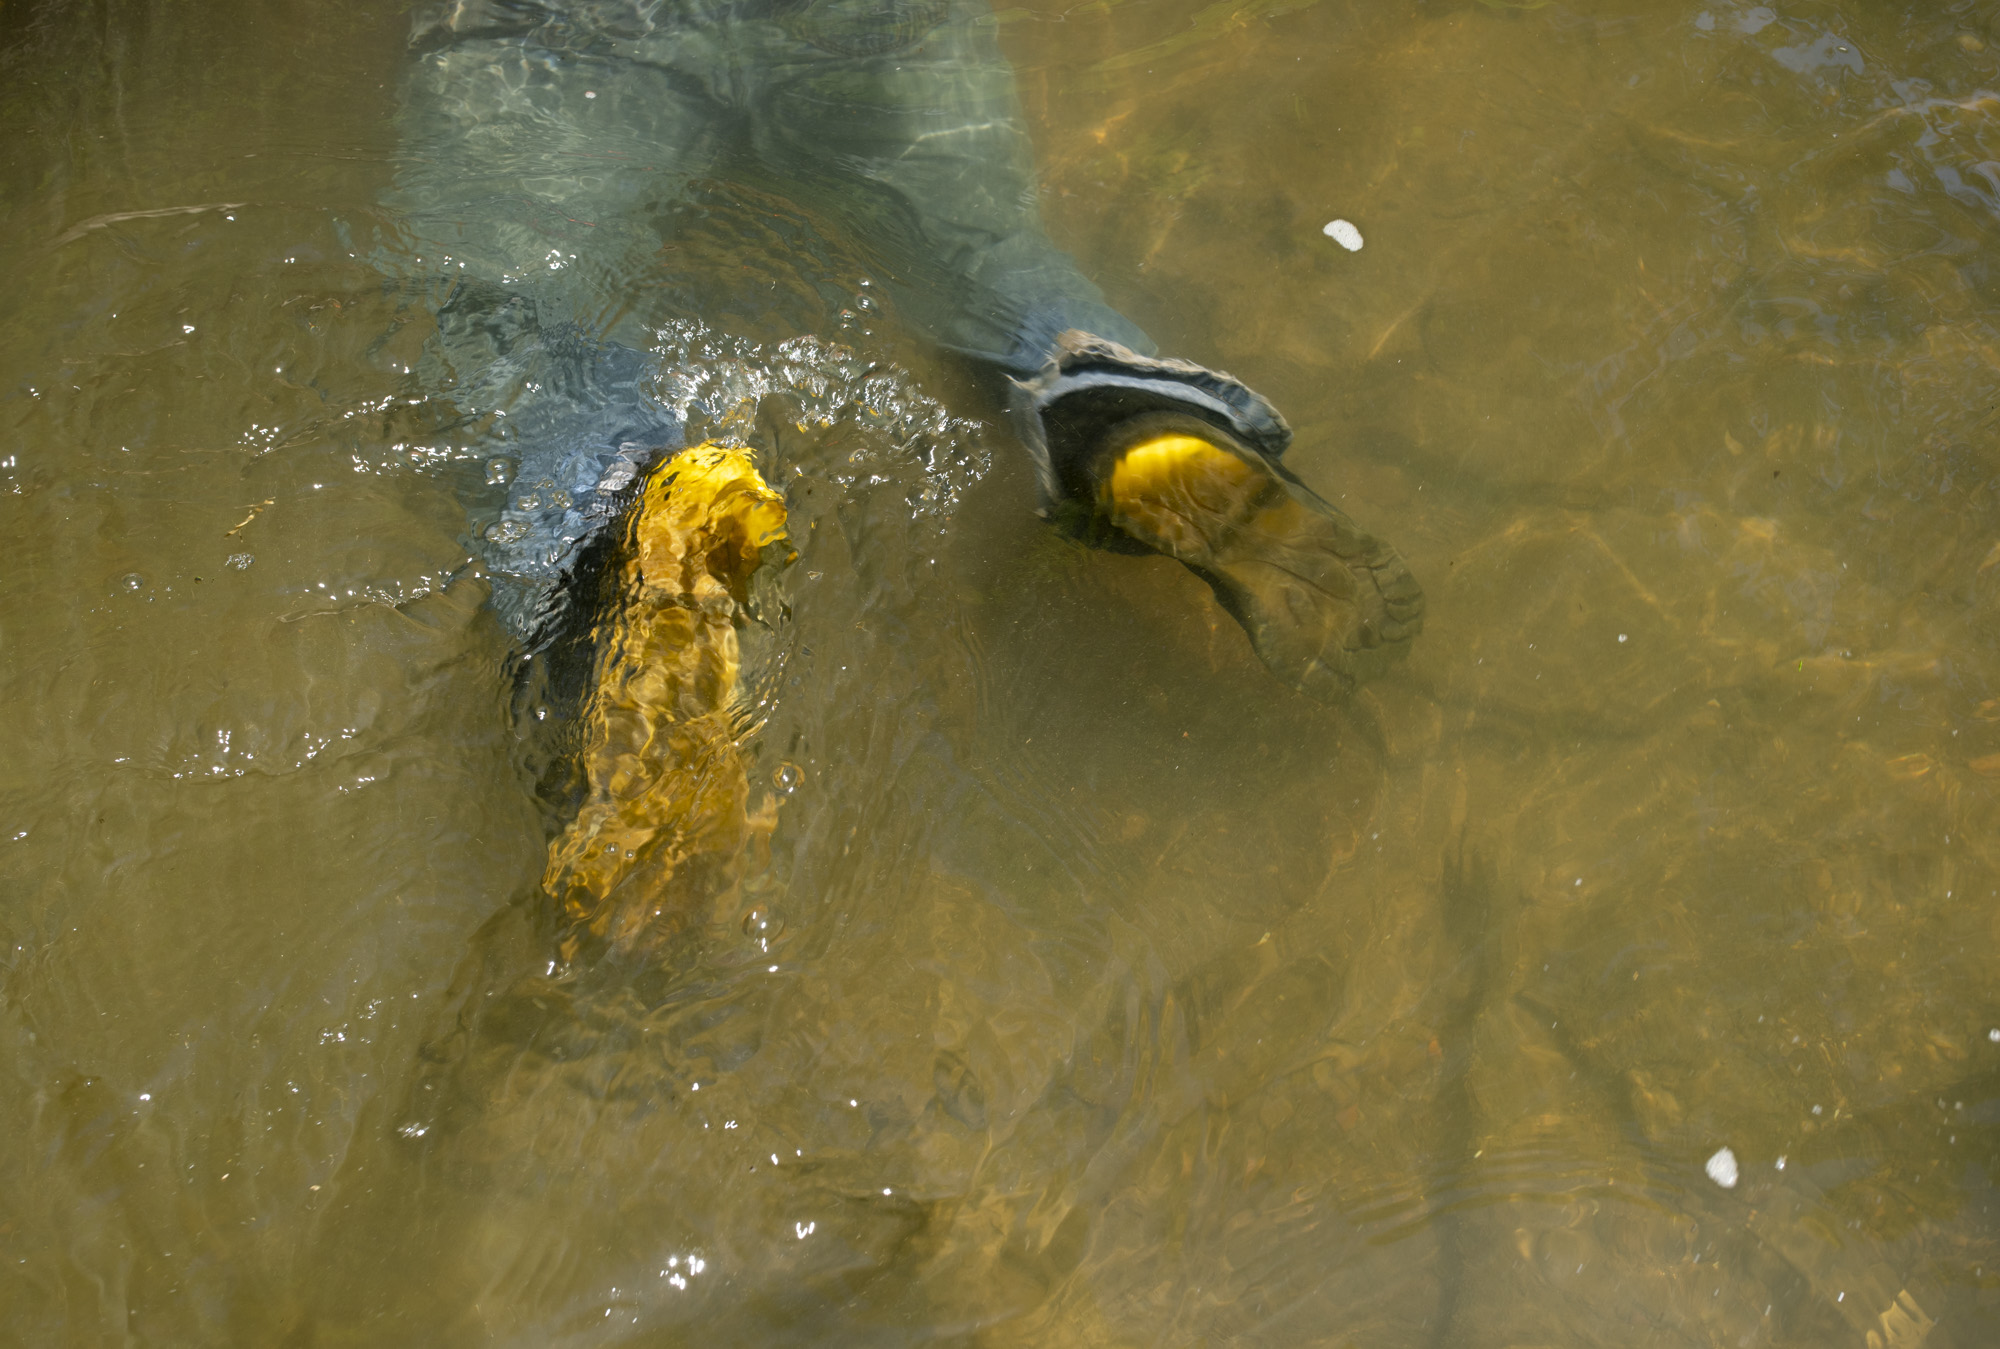 Joe Clemens legs float in the water as he submerges to reach into a hole that he thinks a snapping turtle is in.